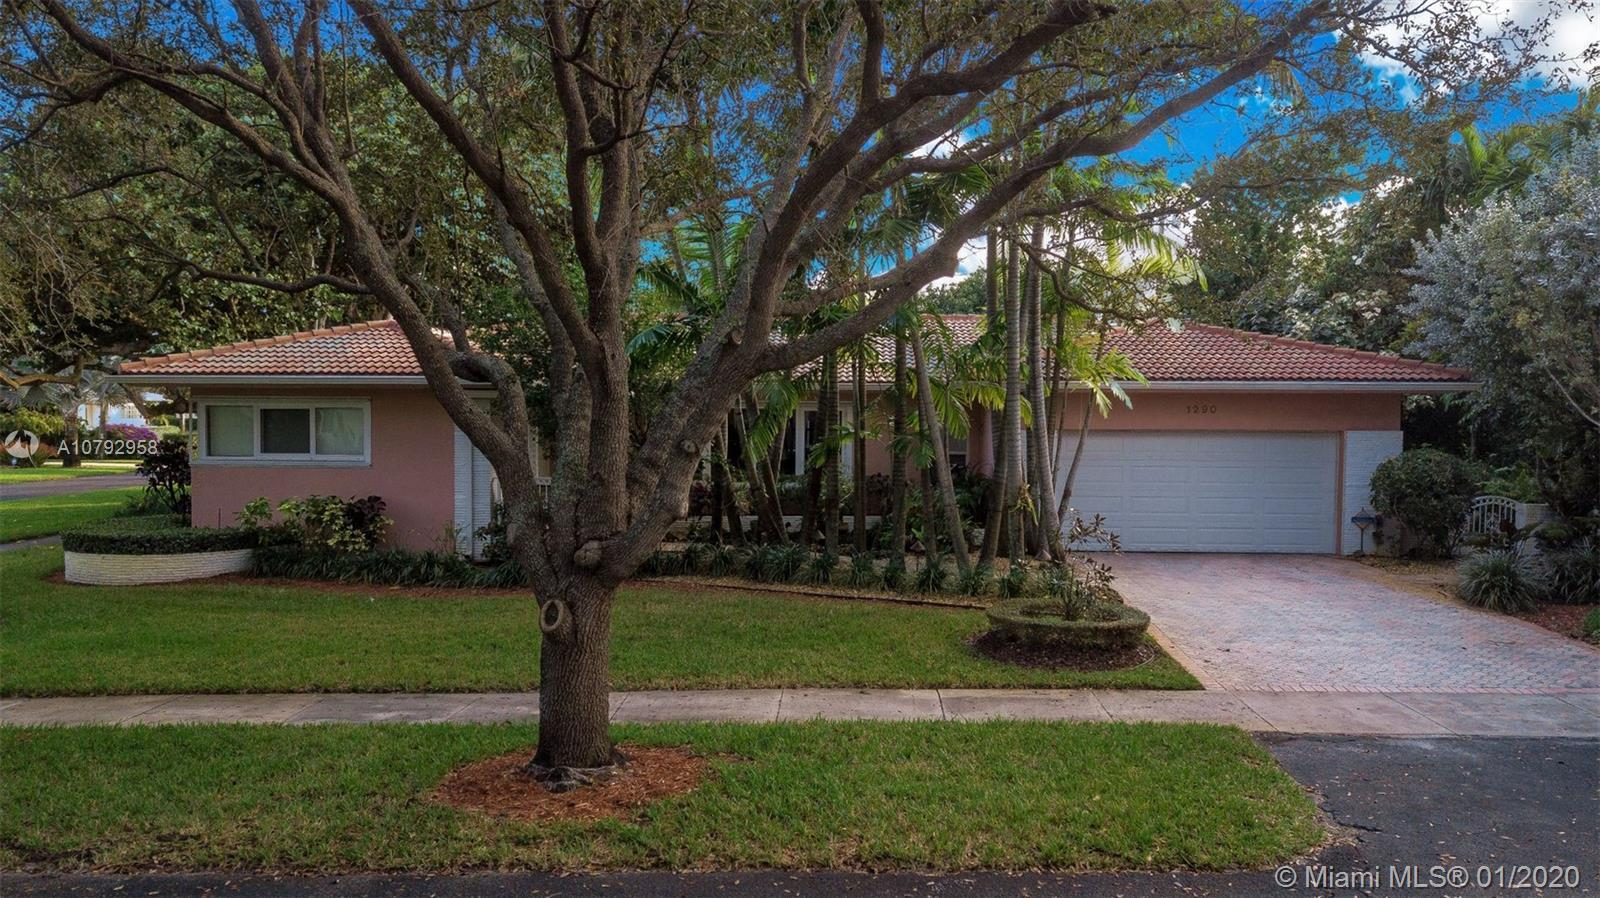 Three bedrooms and three full bathrooms East of US-1 in Miami Shores. Corner lot with koi pond,  scr